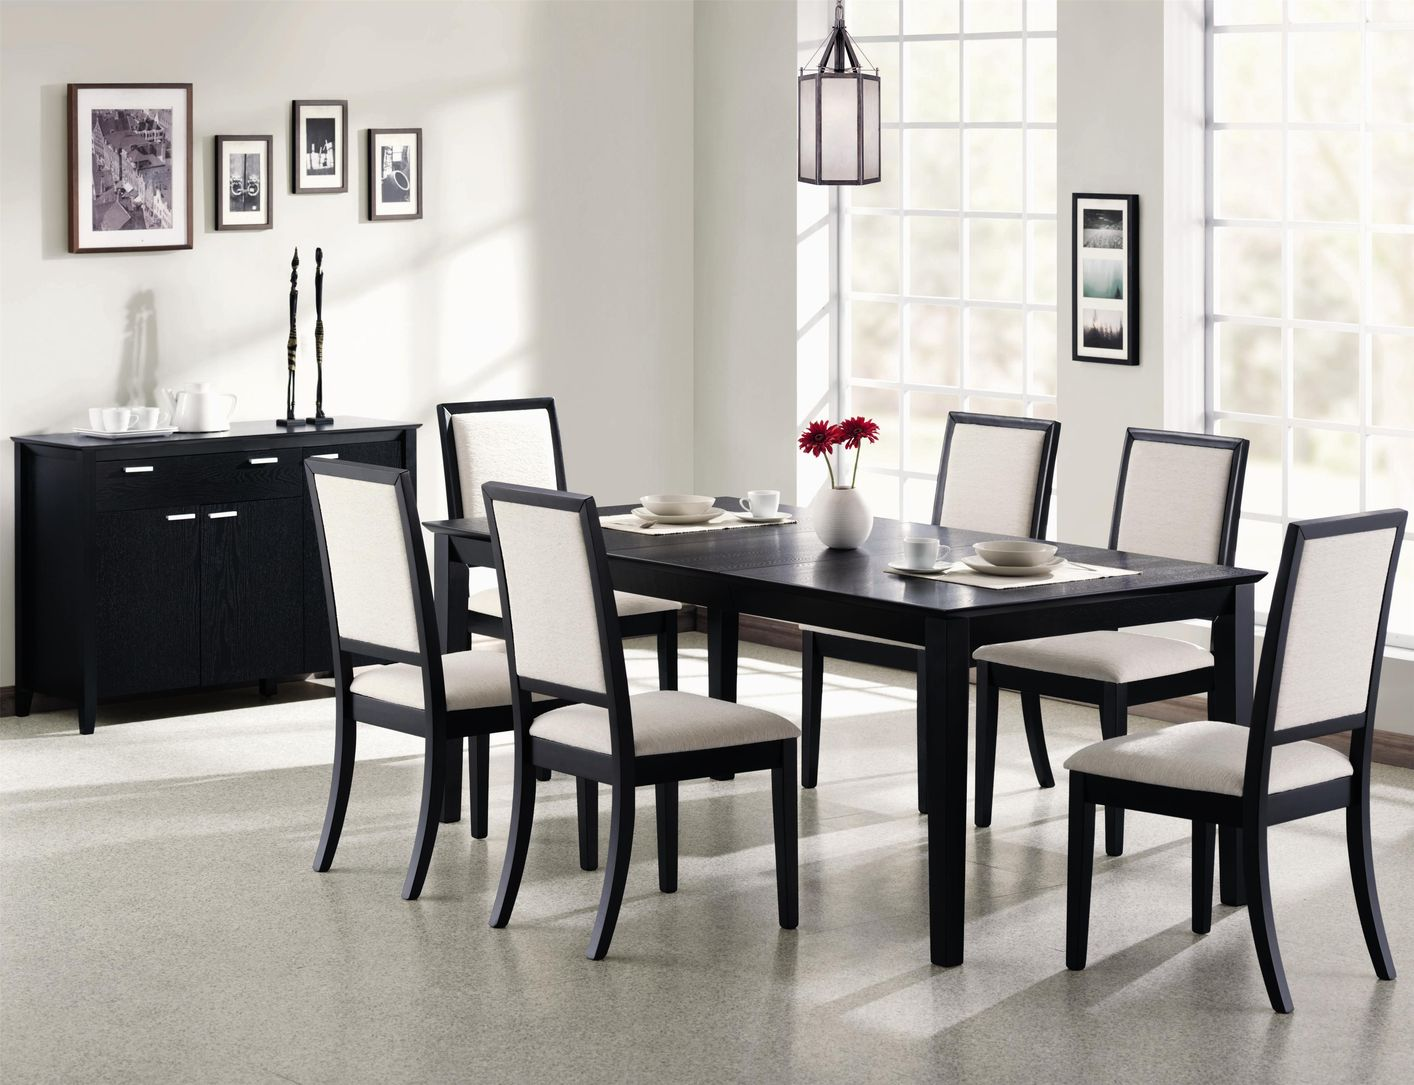 Coaster louise 101561 101562 black wood dining table set in los angeles ca - Black dining room tables ...